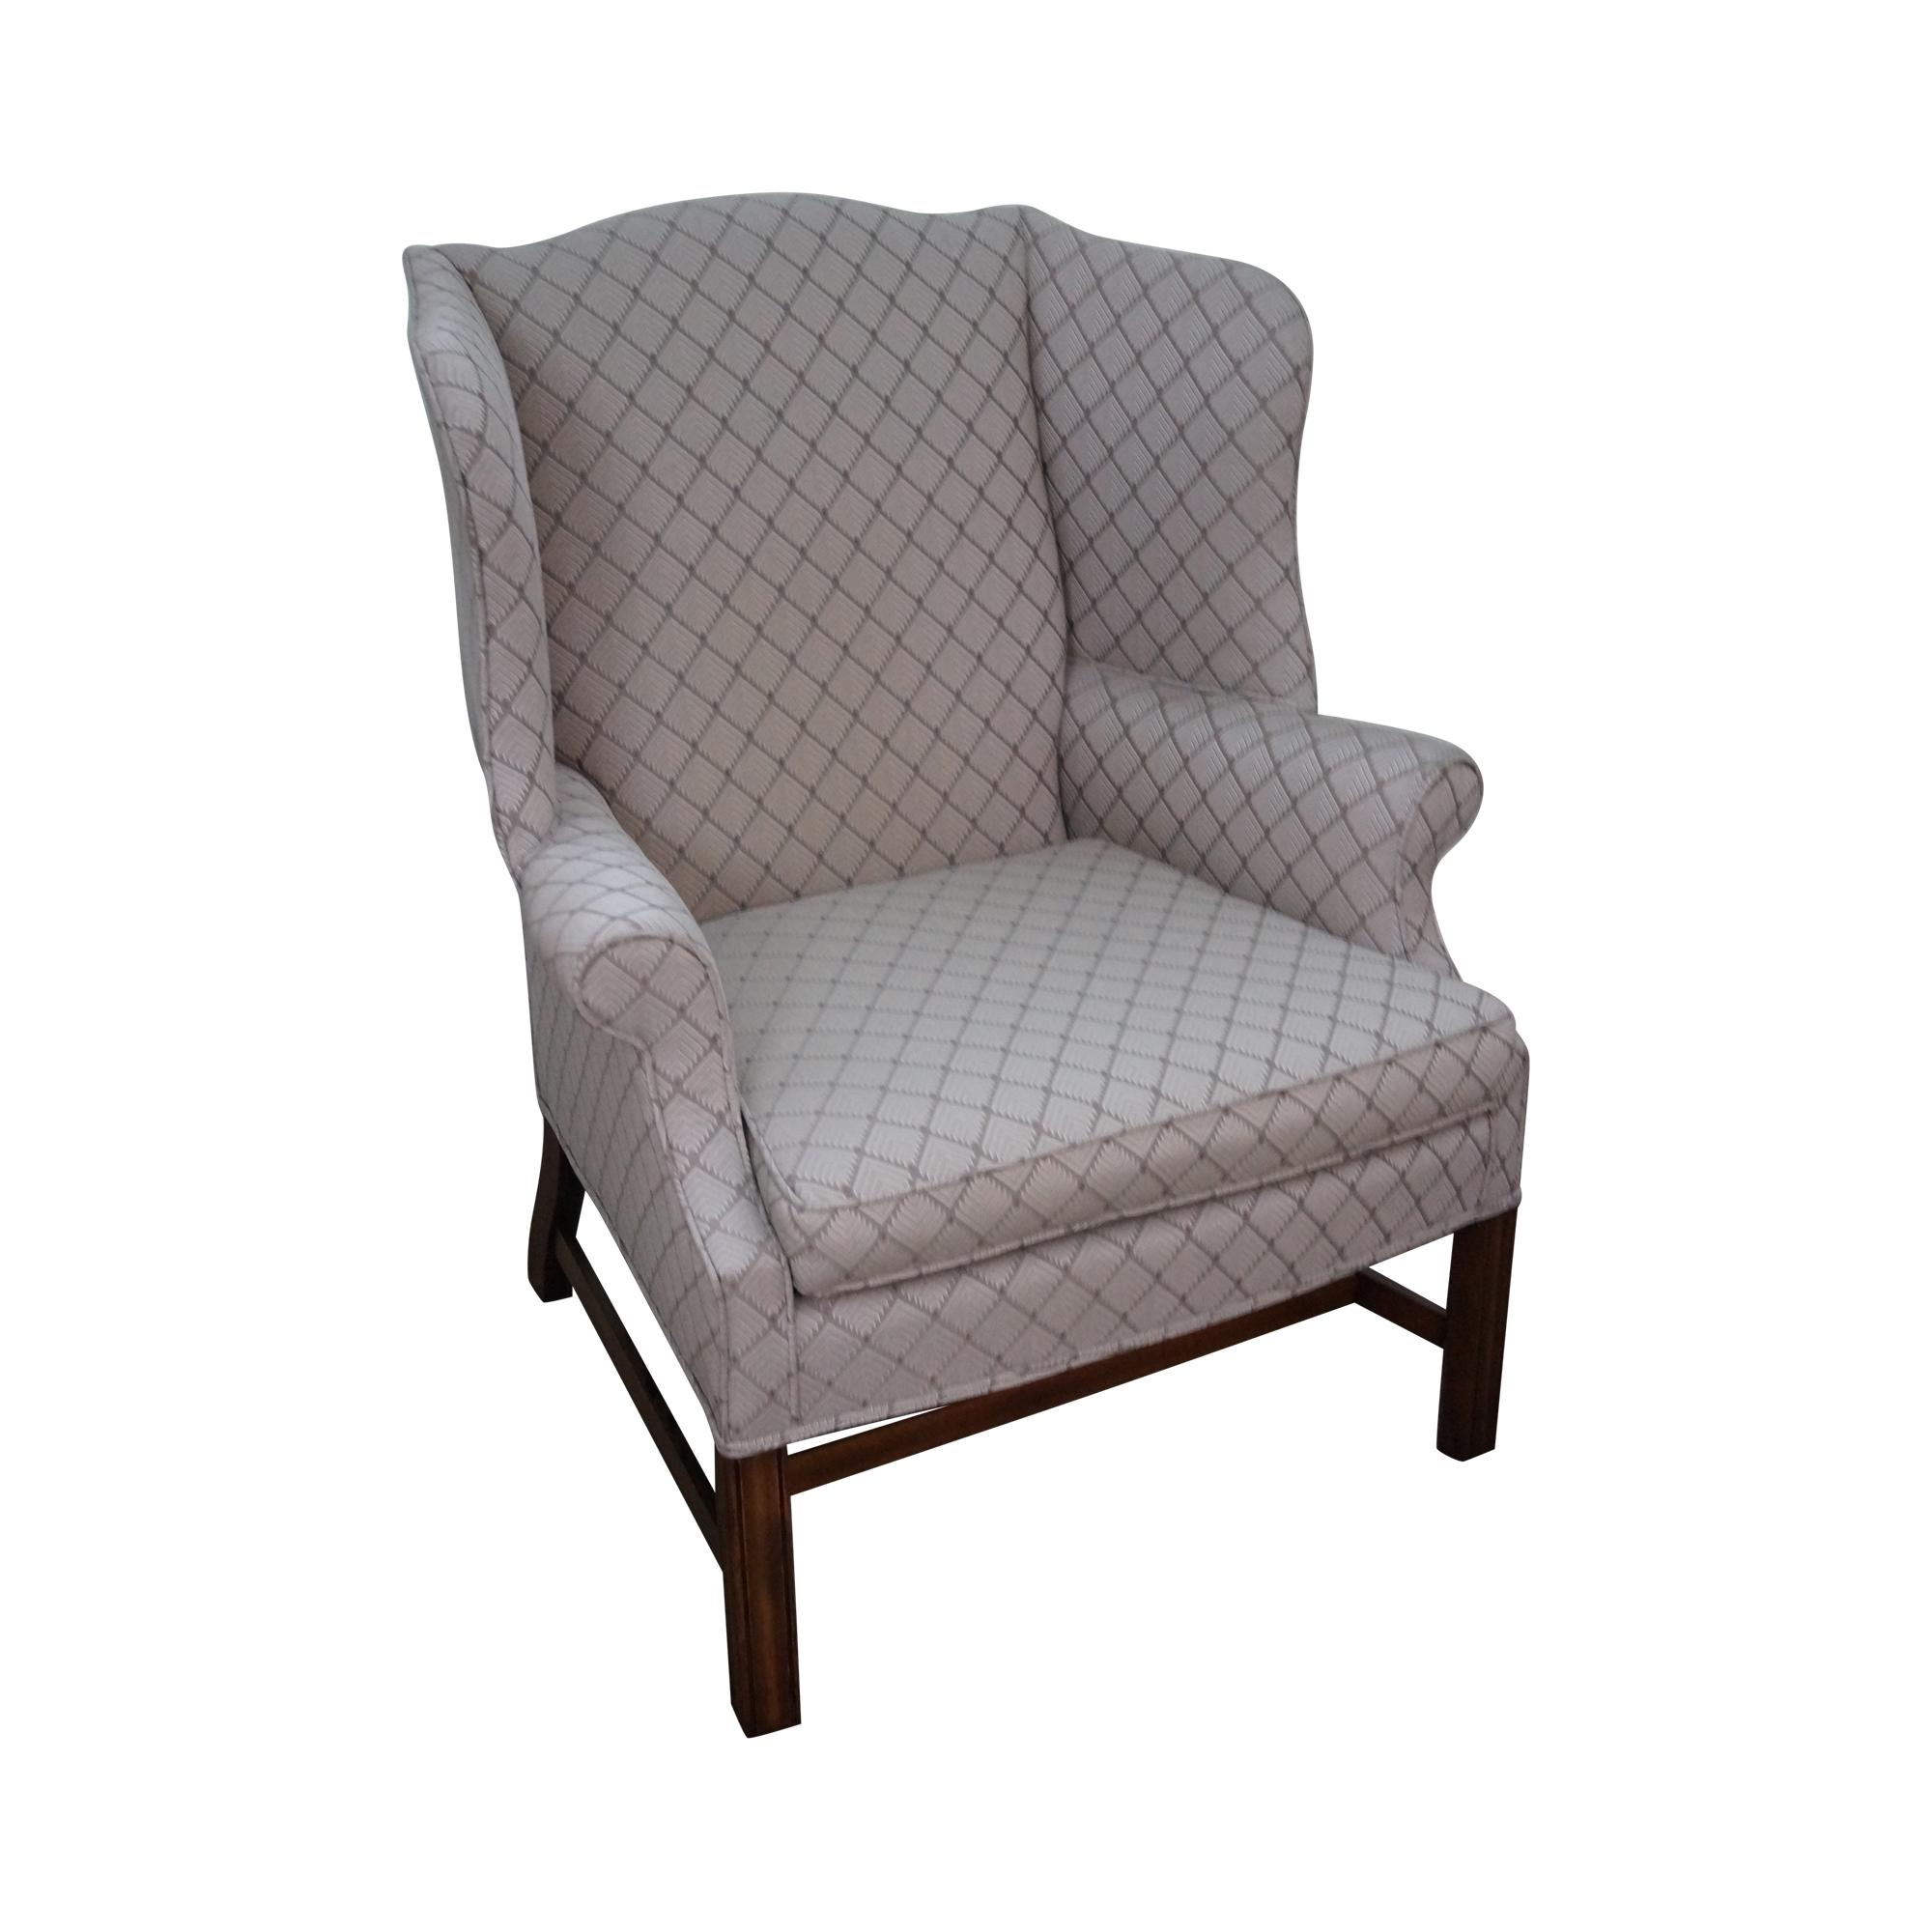 chippendale rocking chair bed furniture village vintage style wing chairish